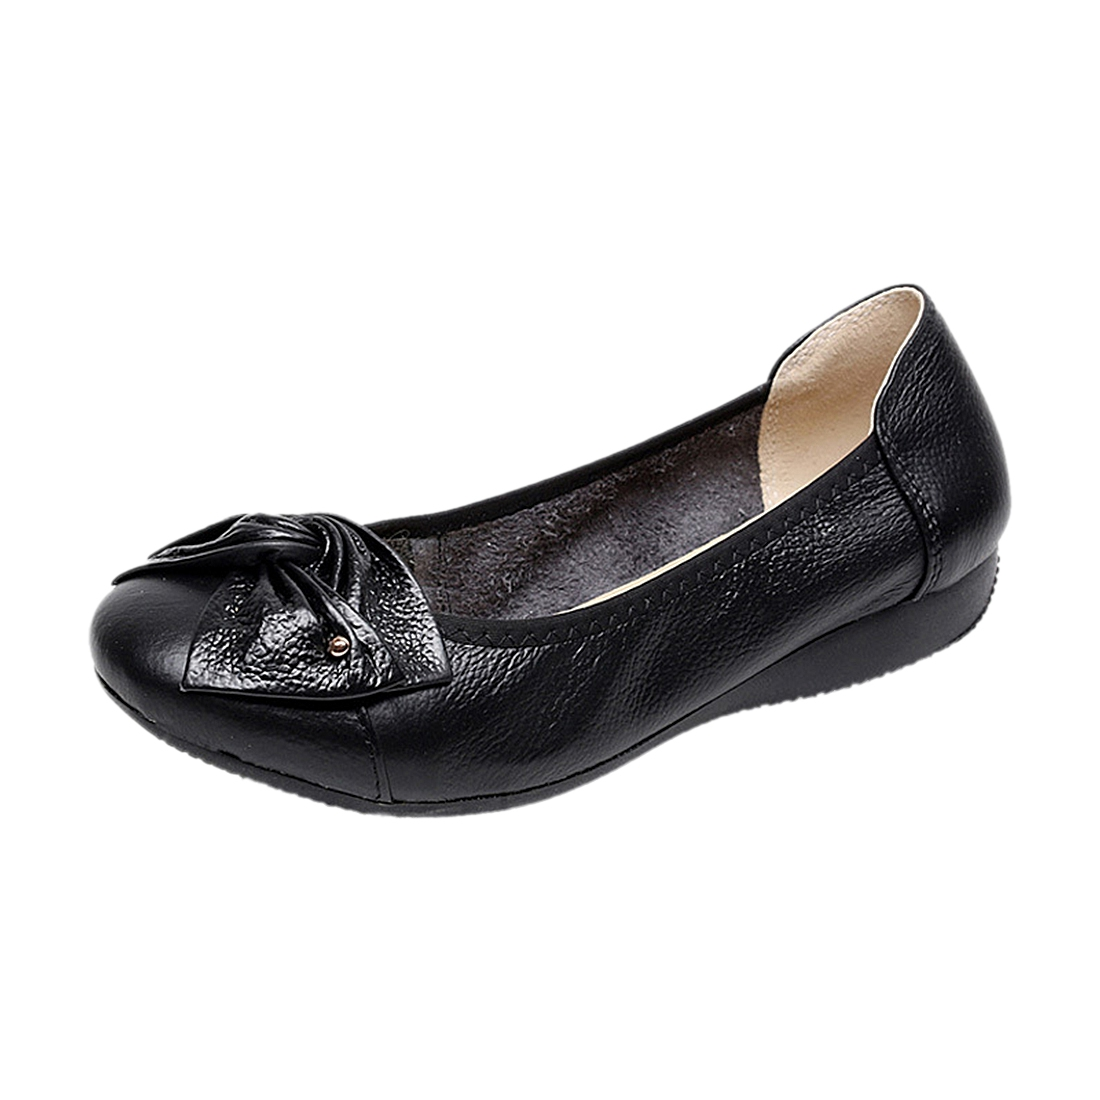 Handmade genuine leather ballet women female casual shoes women flats shoes slip on car-styling driving loafer pl us size 38 47 handmade genuine leather mens shoes casual men loafers fashion breathable driving shoes slip on moccasins